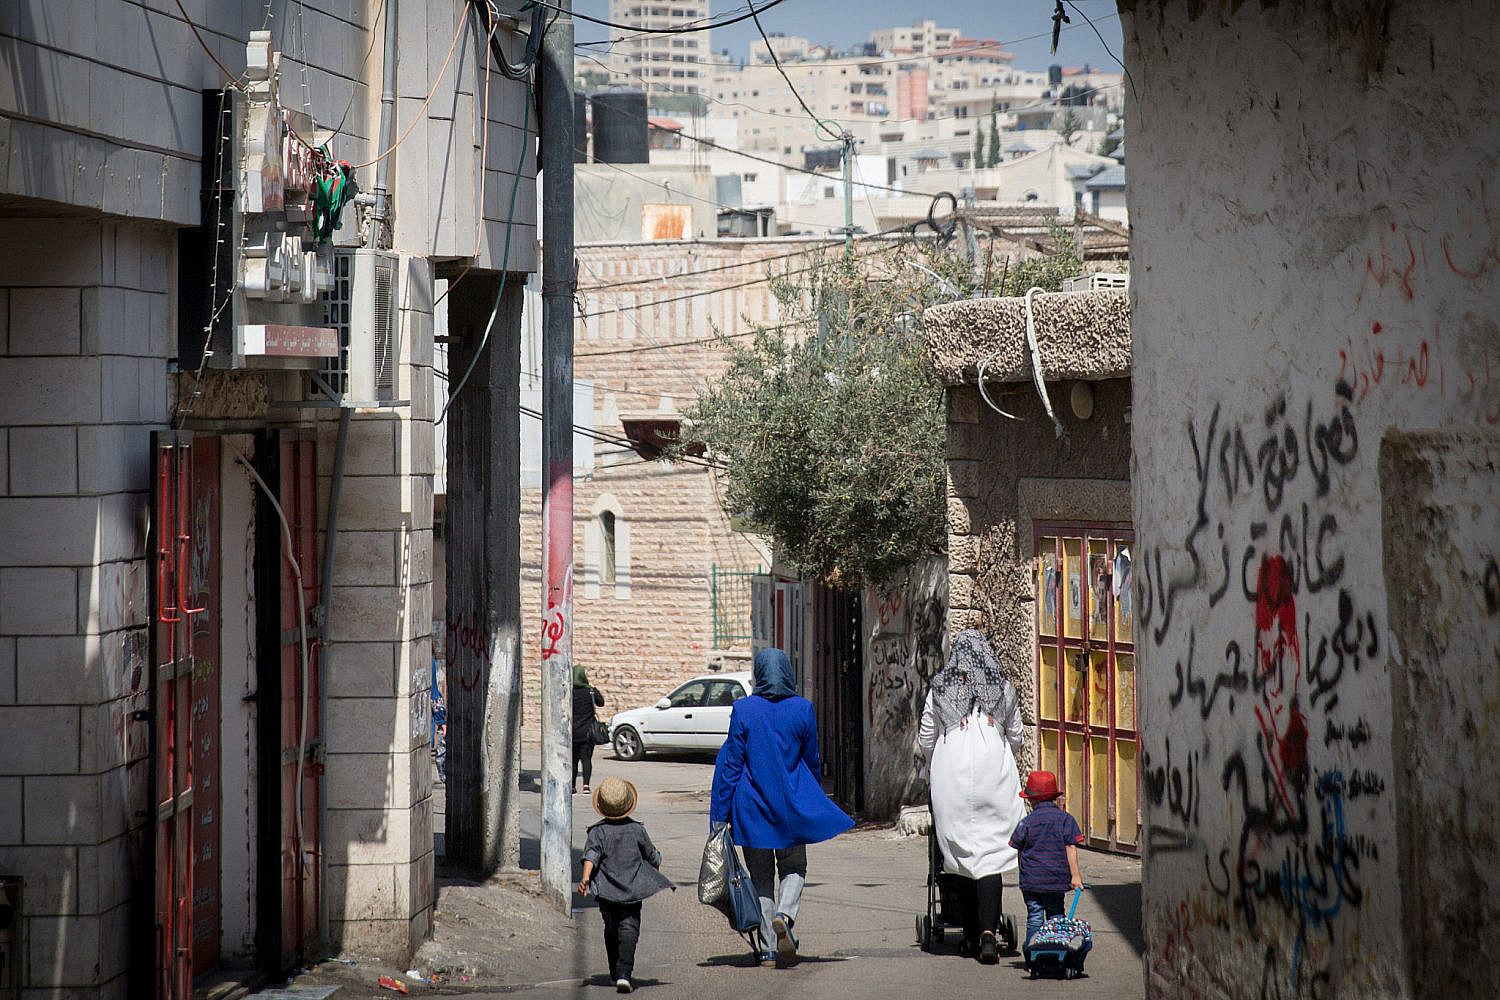 Palestinian women walk through the alleyways of Dheisheh Refugee Camp, in the West Bank city of Bethlehem, August 30, 2018. (Miriam Alster/Flas90)